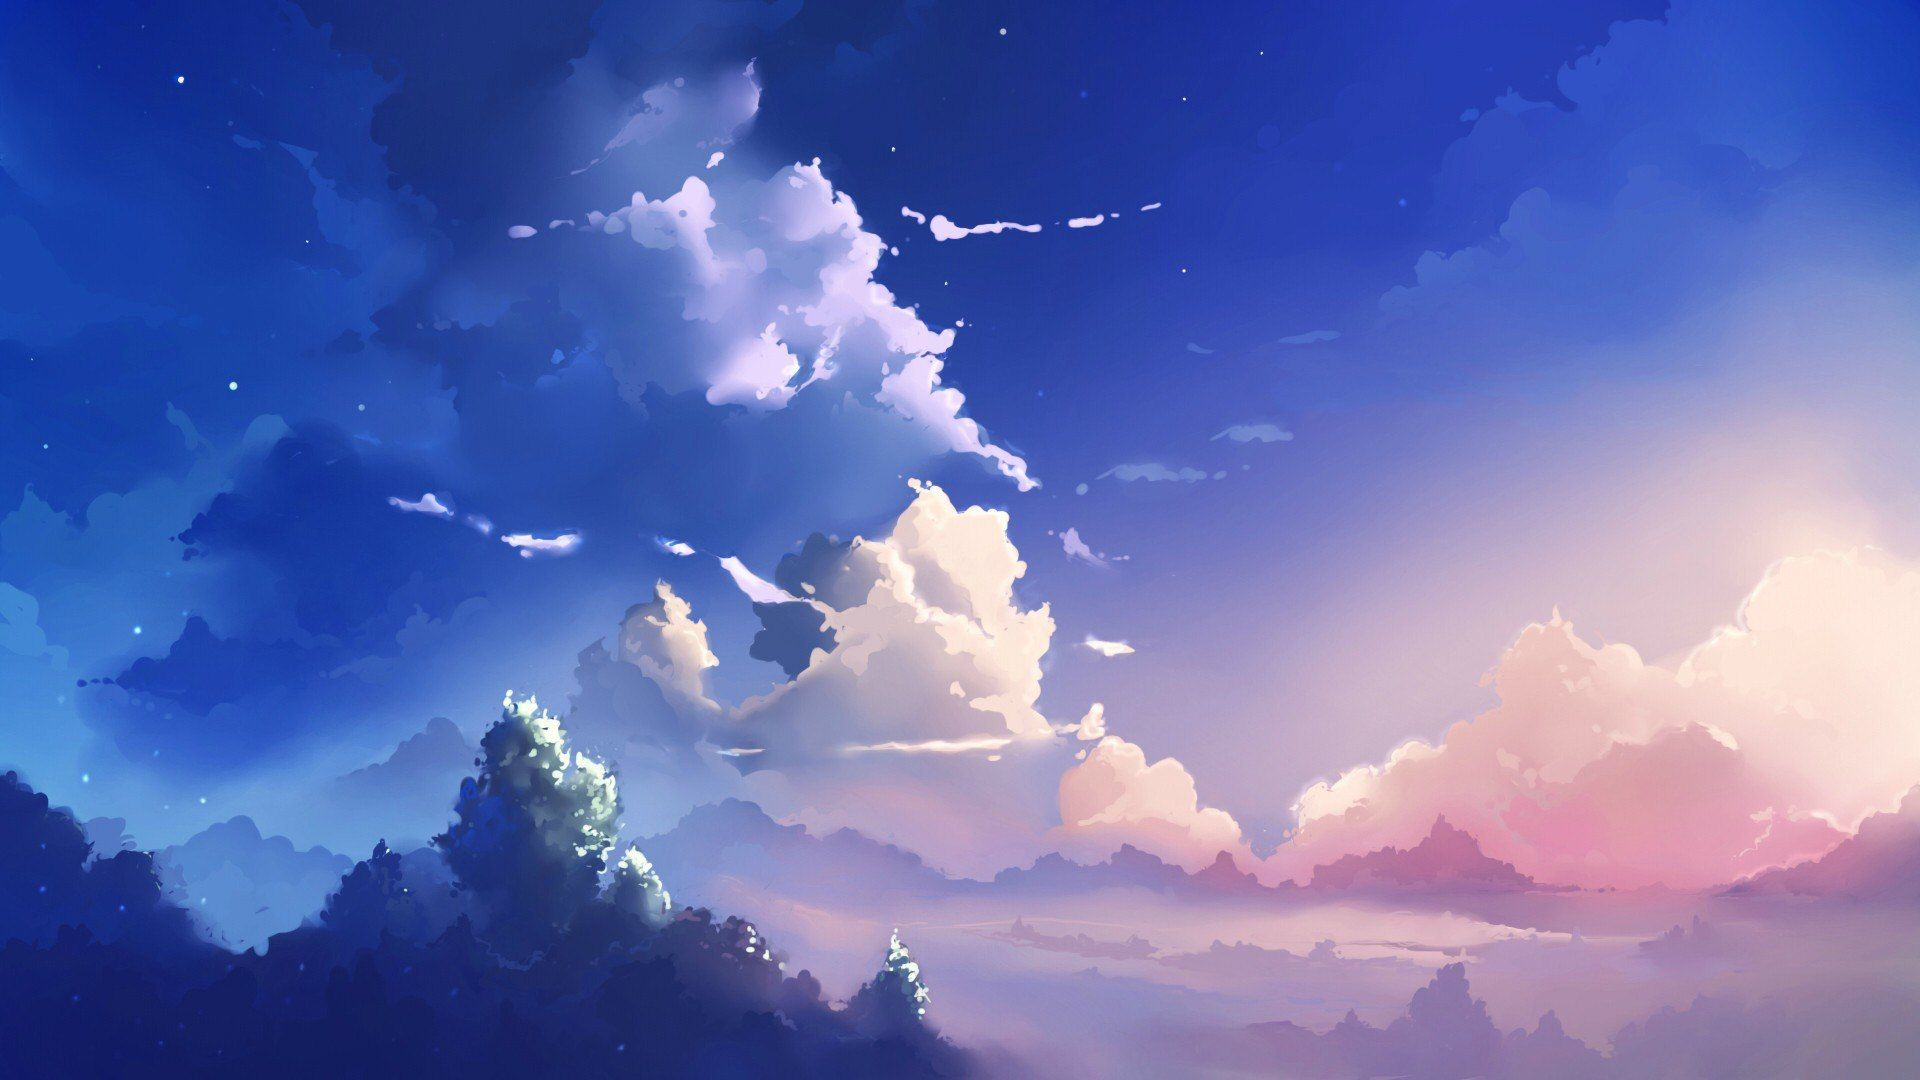 Anime Sky Scenery Wallpaper 7984